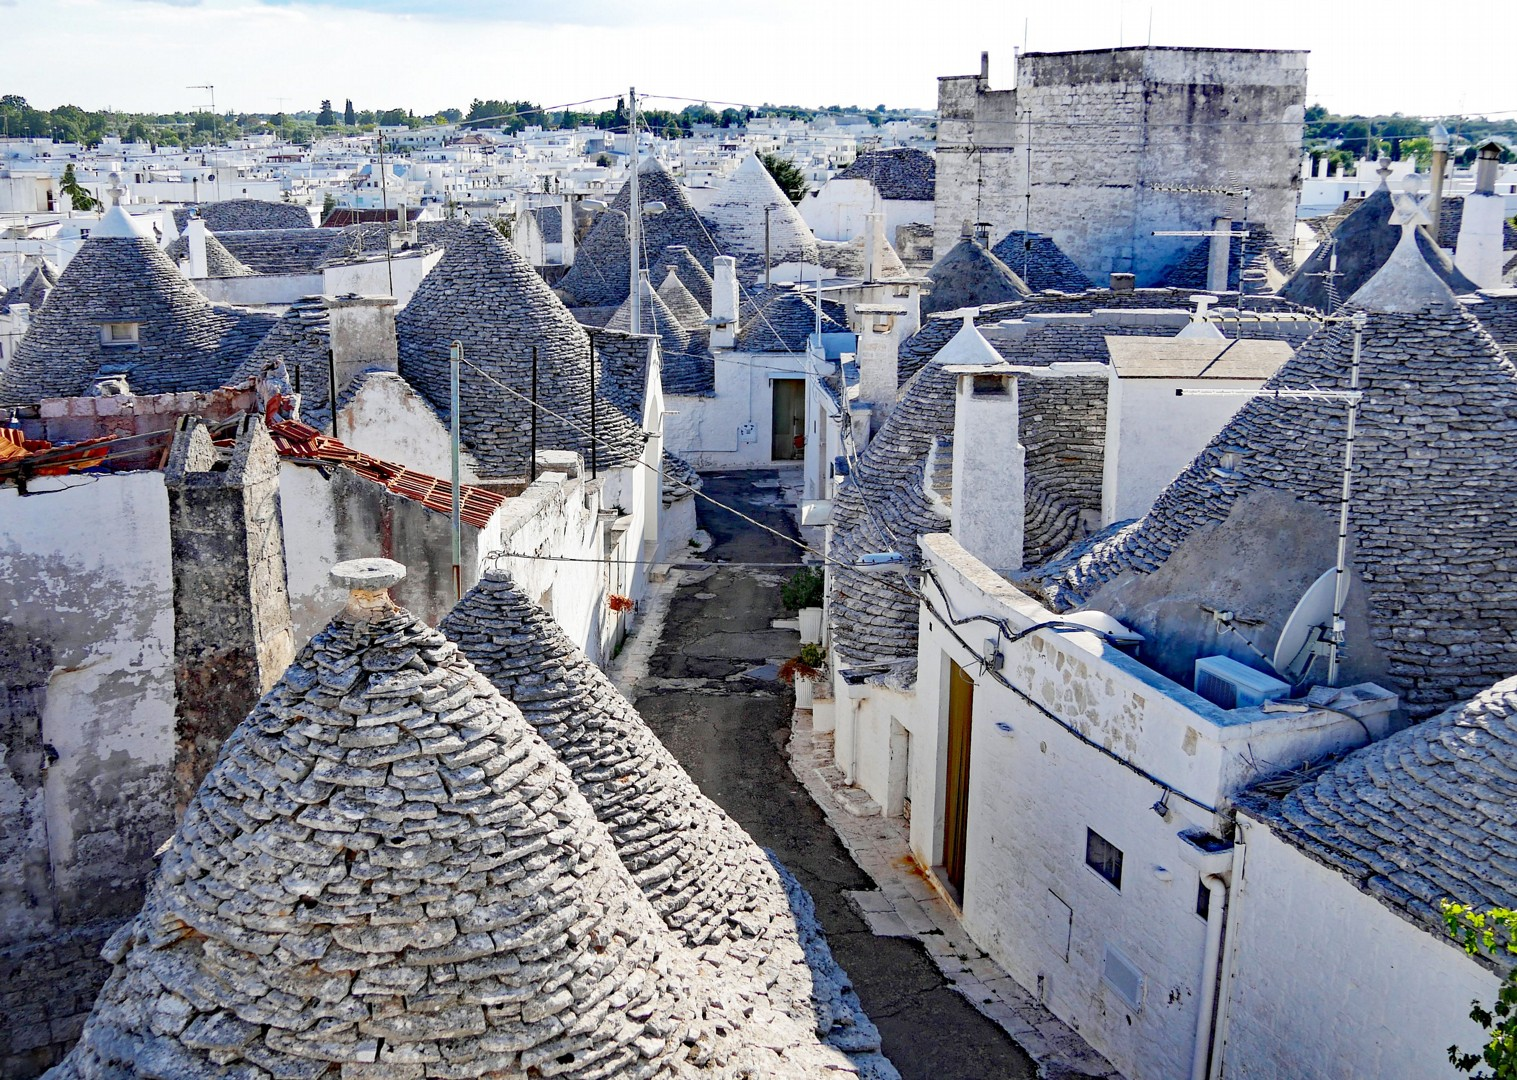 trulli-rooftop-view-alberobello-road-cycling-trip.jpg - Italy - Grand Traverse - South to North (22 days) - Guided Road Cycling Holiday - Italia Road Cycling